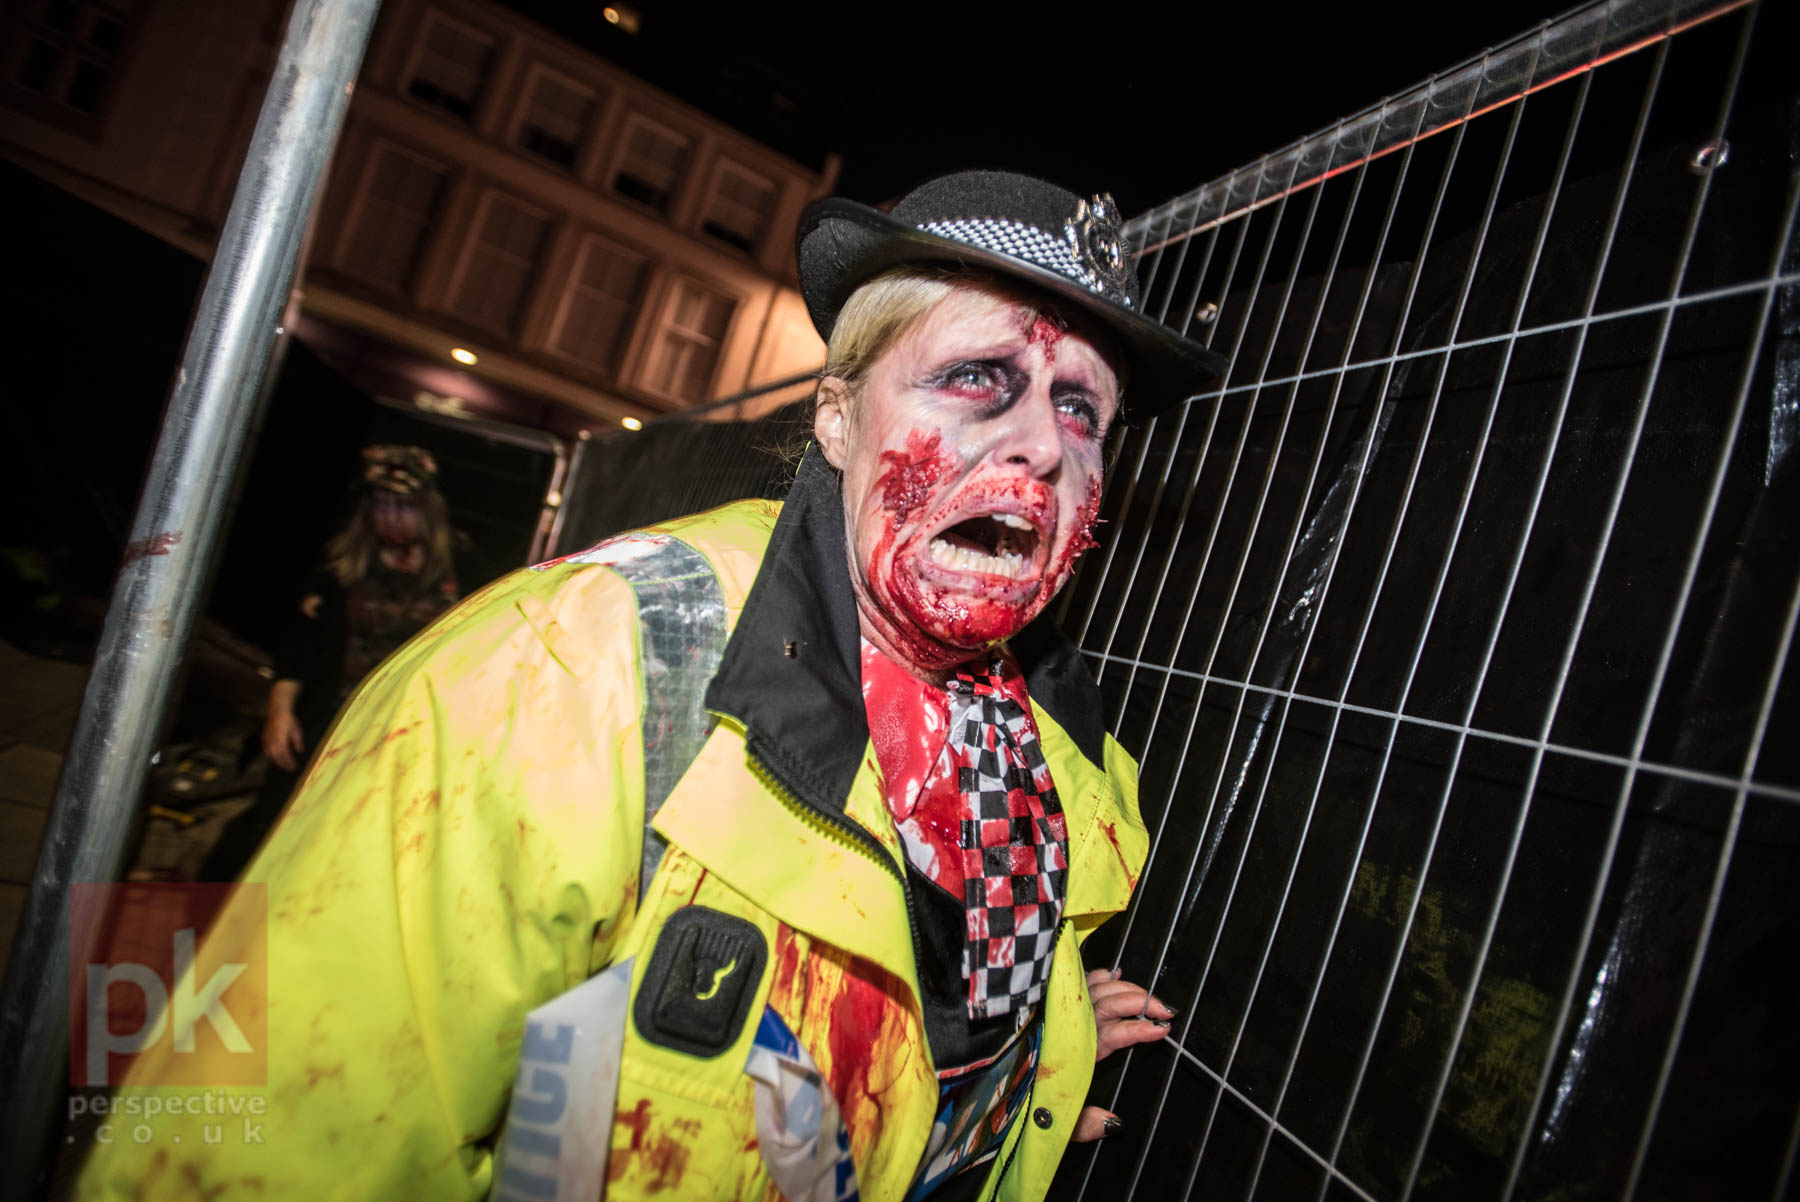 Zombies in the streets of Perth for the Hallowe'en festivities.